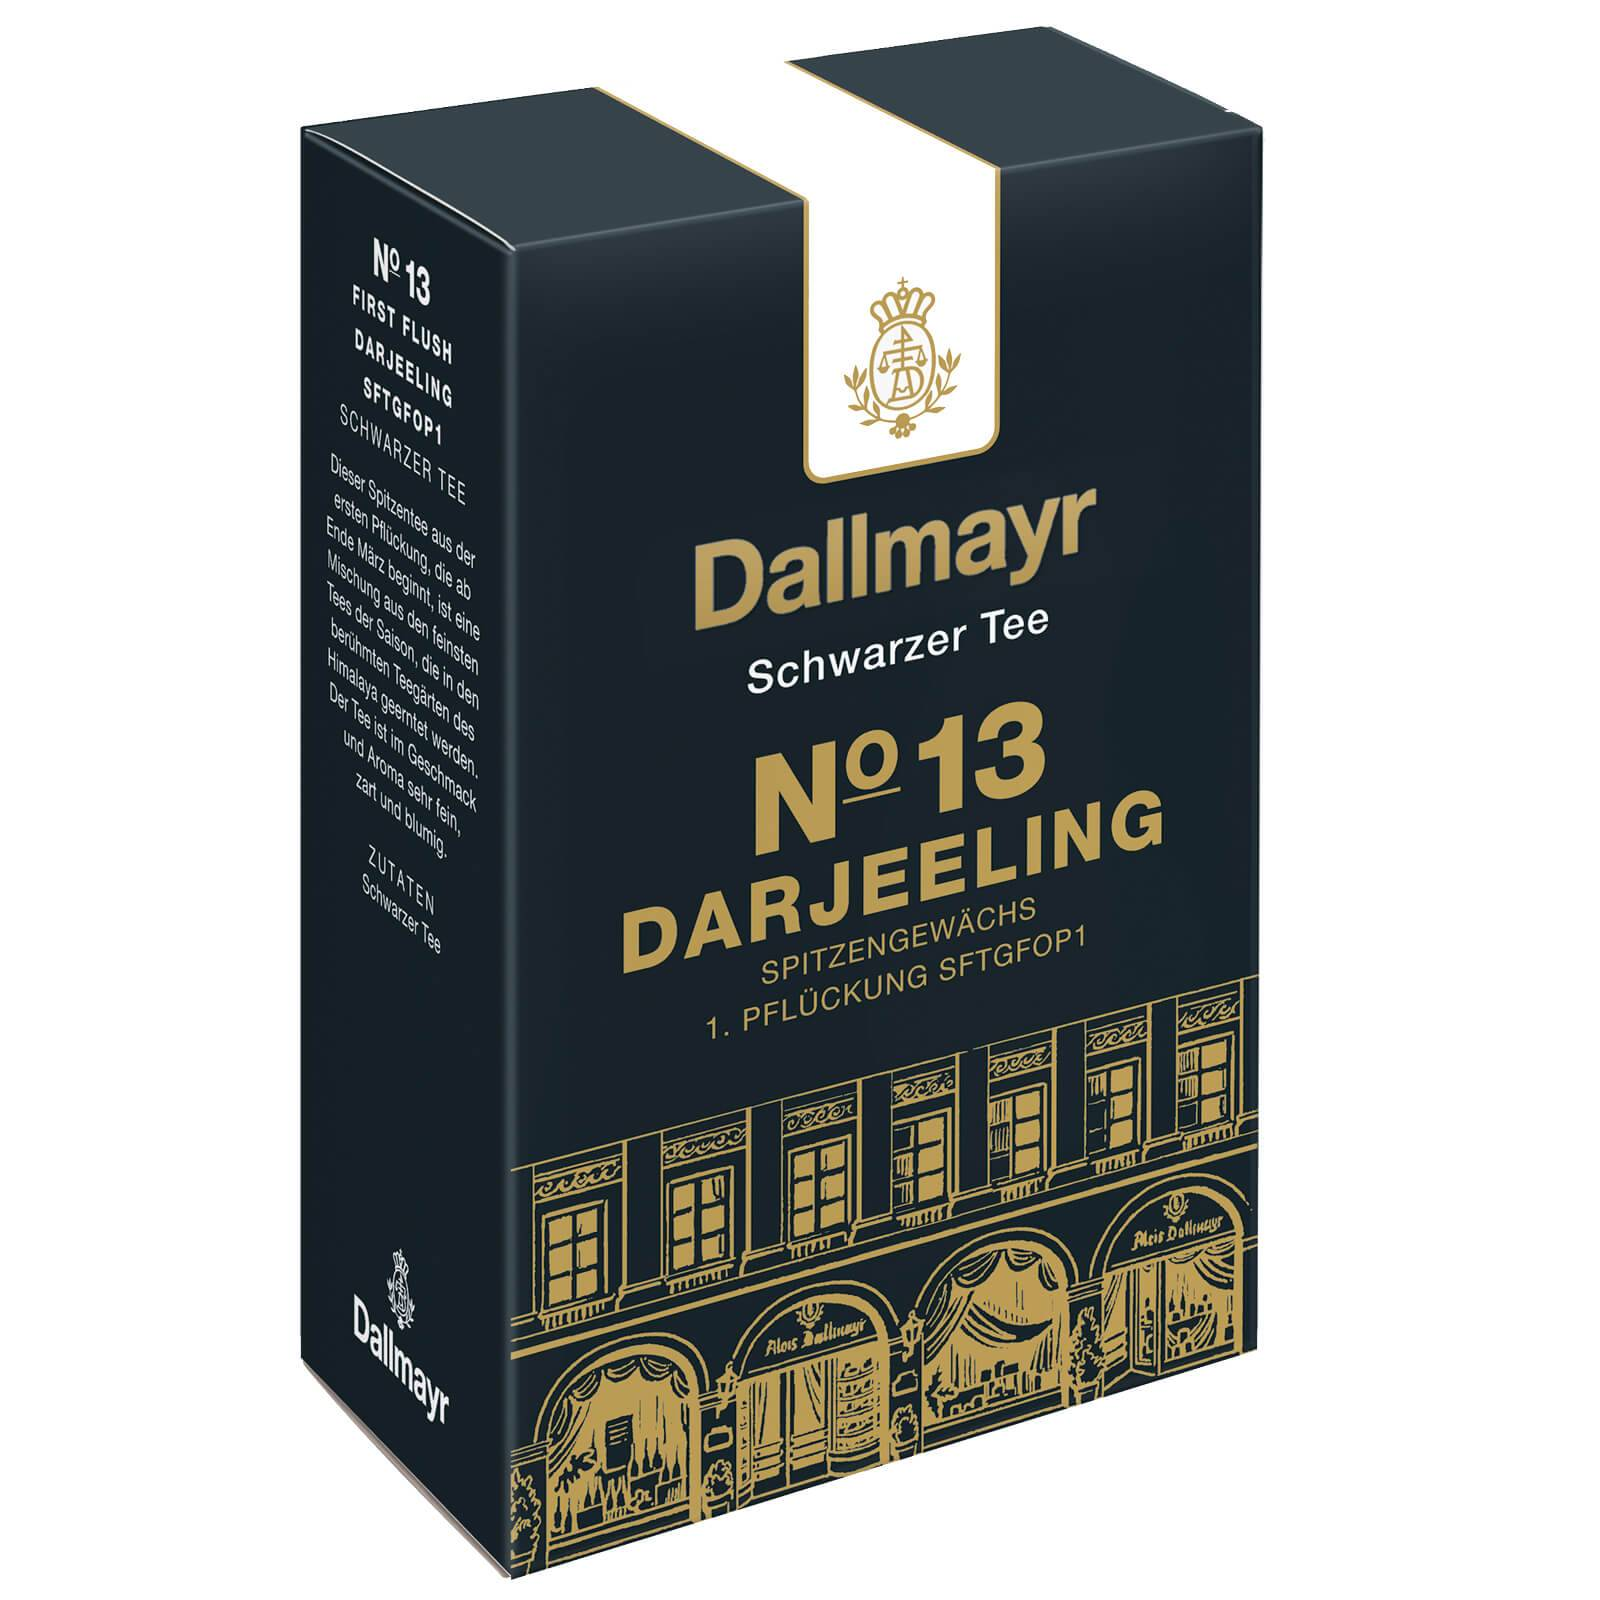 dallmayr no13 darjeeling loser schwarzer tee 100g 1 pfl ckung sftgfop1 ebay. Black Bedroom Furniture Sets. Home Design Ideas